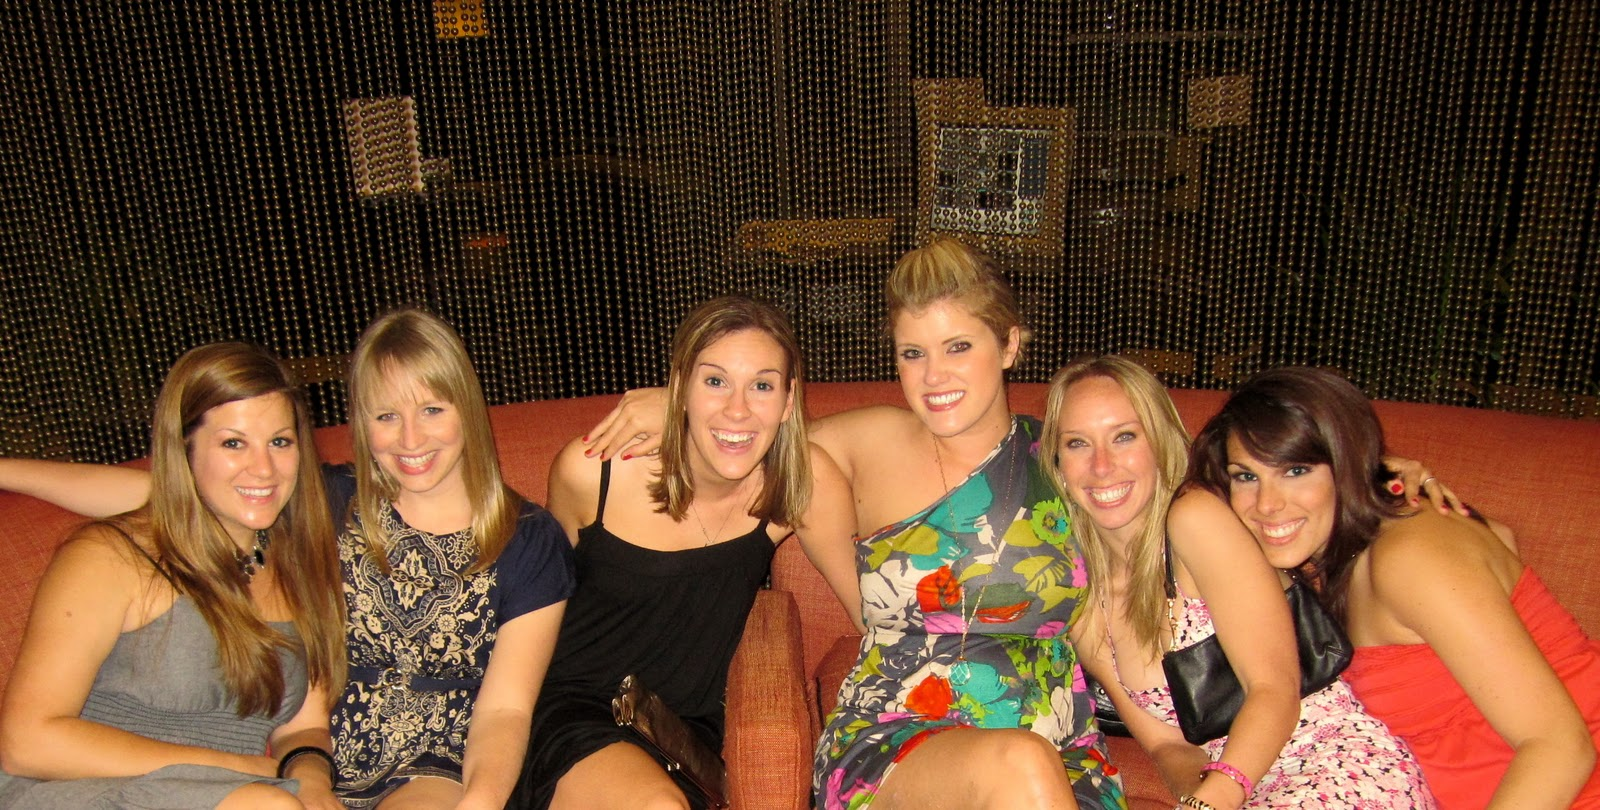 Miami Beach Bachelorette Party Hotels